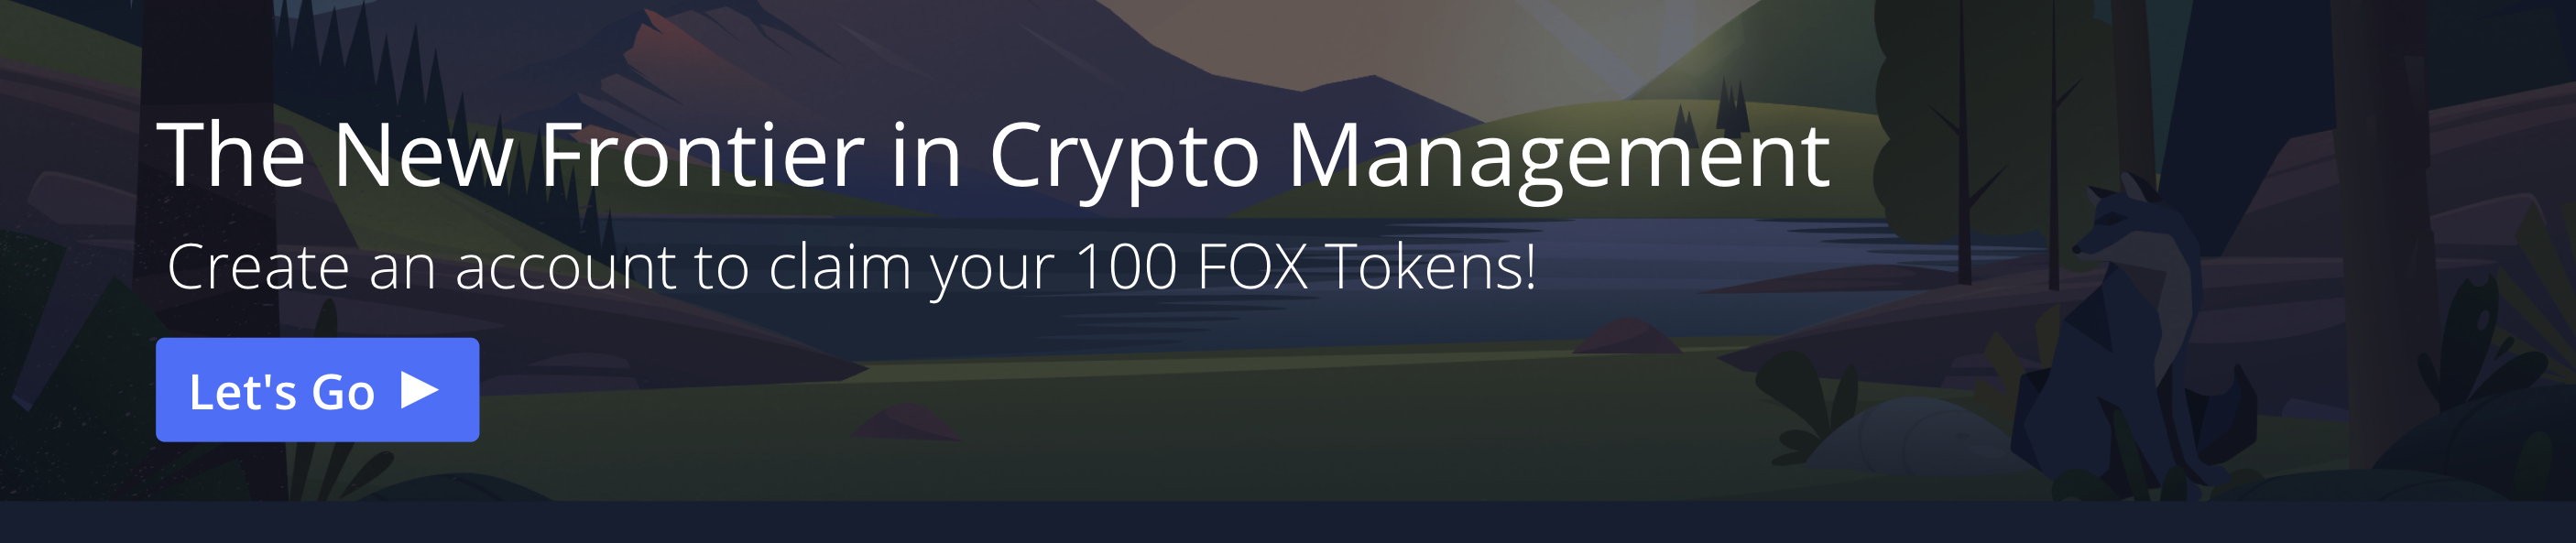 The new frontier in crypto management. Create an account to claim your 100 FOX tokens at ShapeShift.com